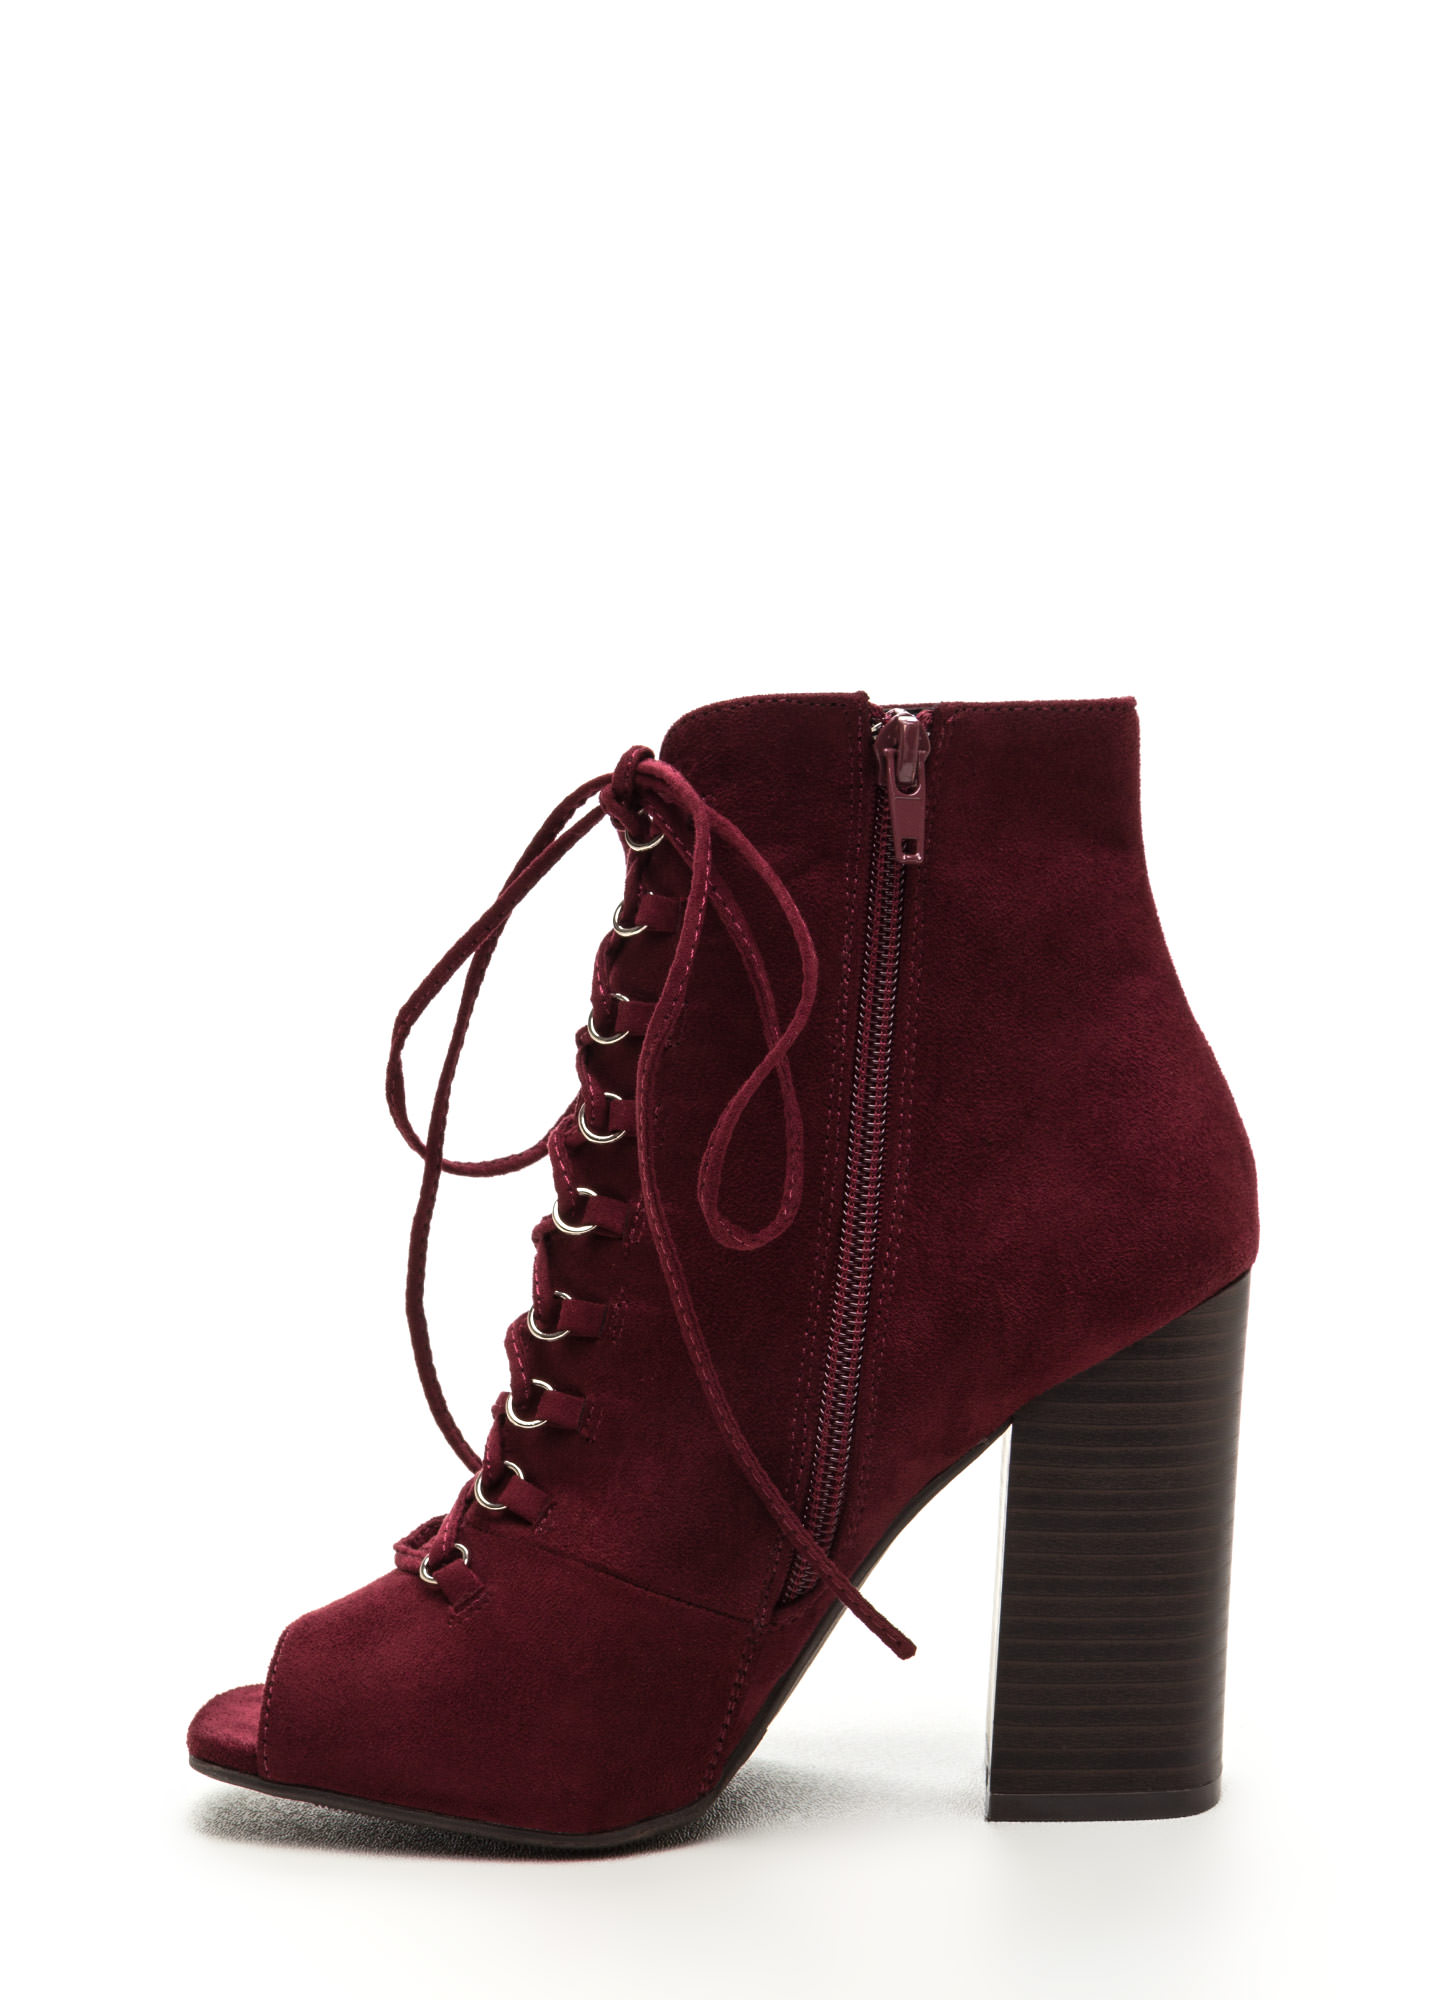 Change Of Pace Lace-Up Peep-Toe Booties BURGUNDY